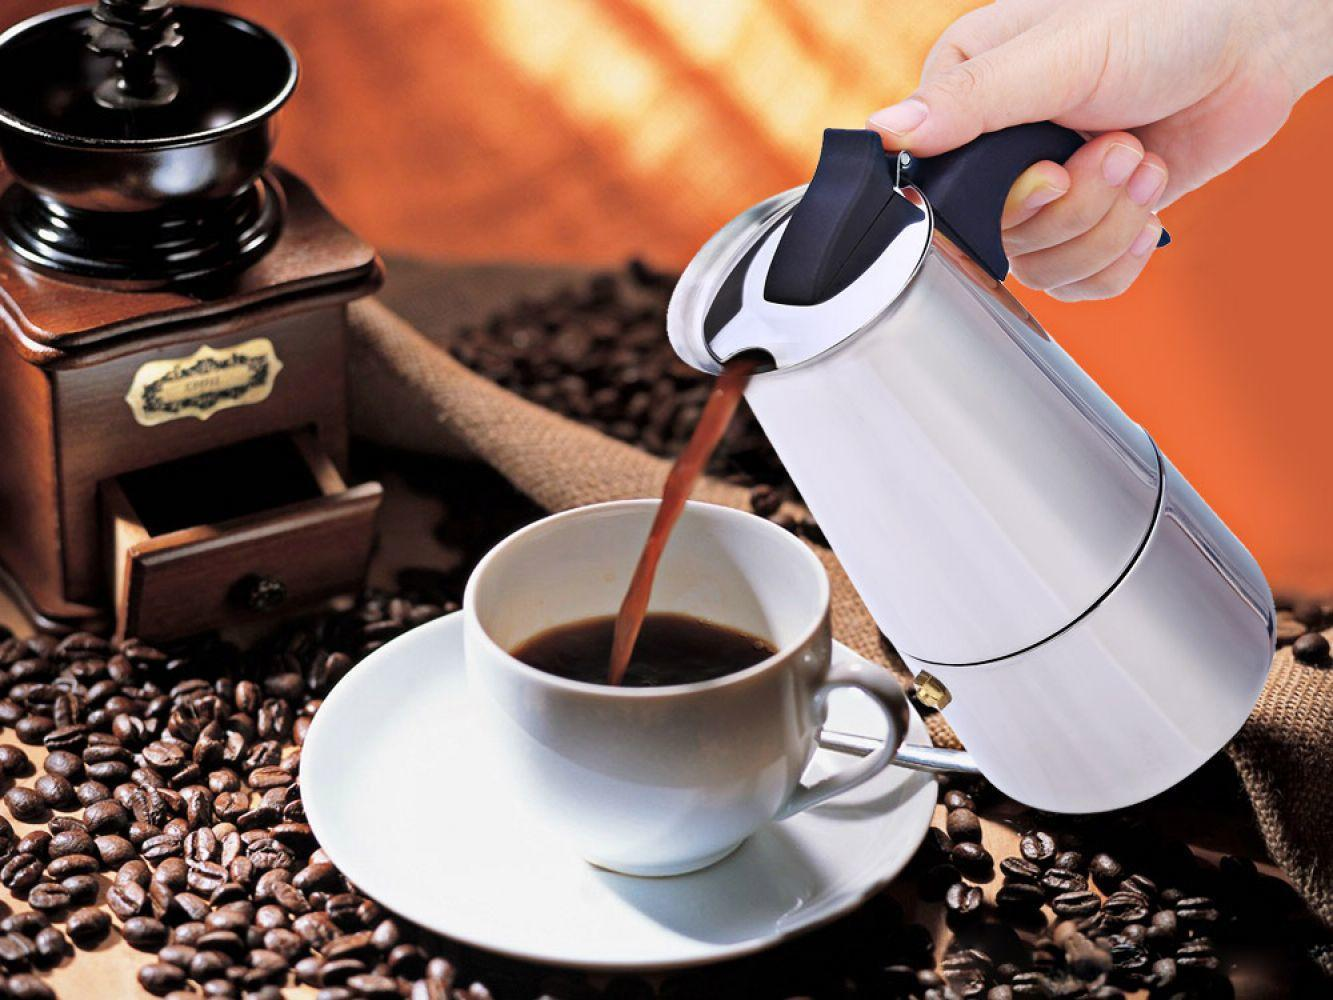 Portable Stainless Steel Coffee Maker Mocha Latte Percolator Stove Cafeteira Espresso Machine With 100ML 200ML 300ML 450MLPortable Stainless Steel Coffee Maker Mocha Latte Percolator Stove Cafeteira Espresso Machine With 100ML 200ML 300ML 450ML